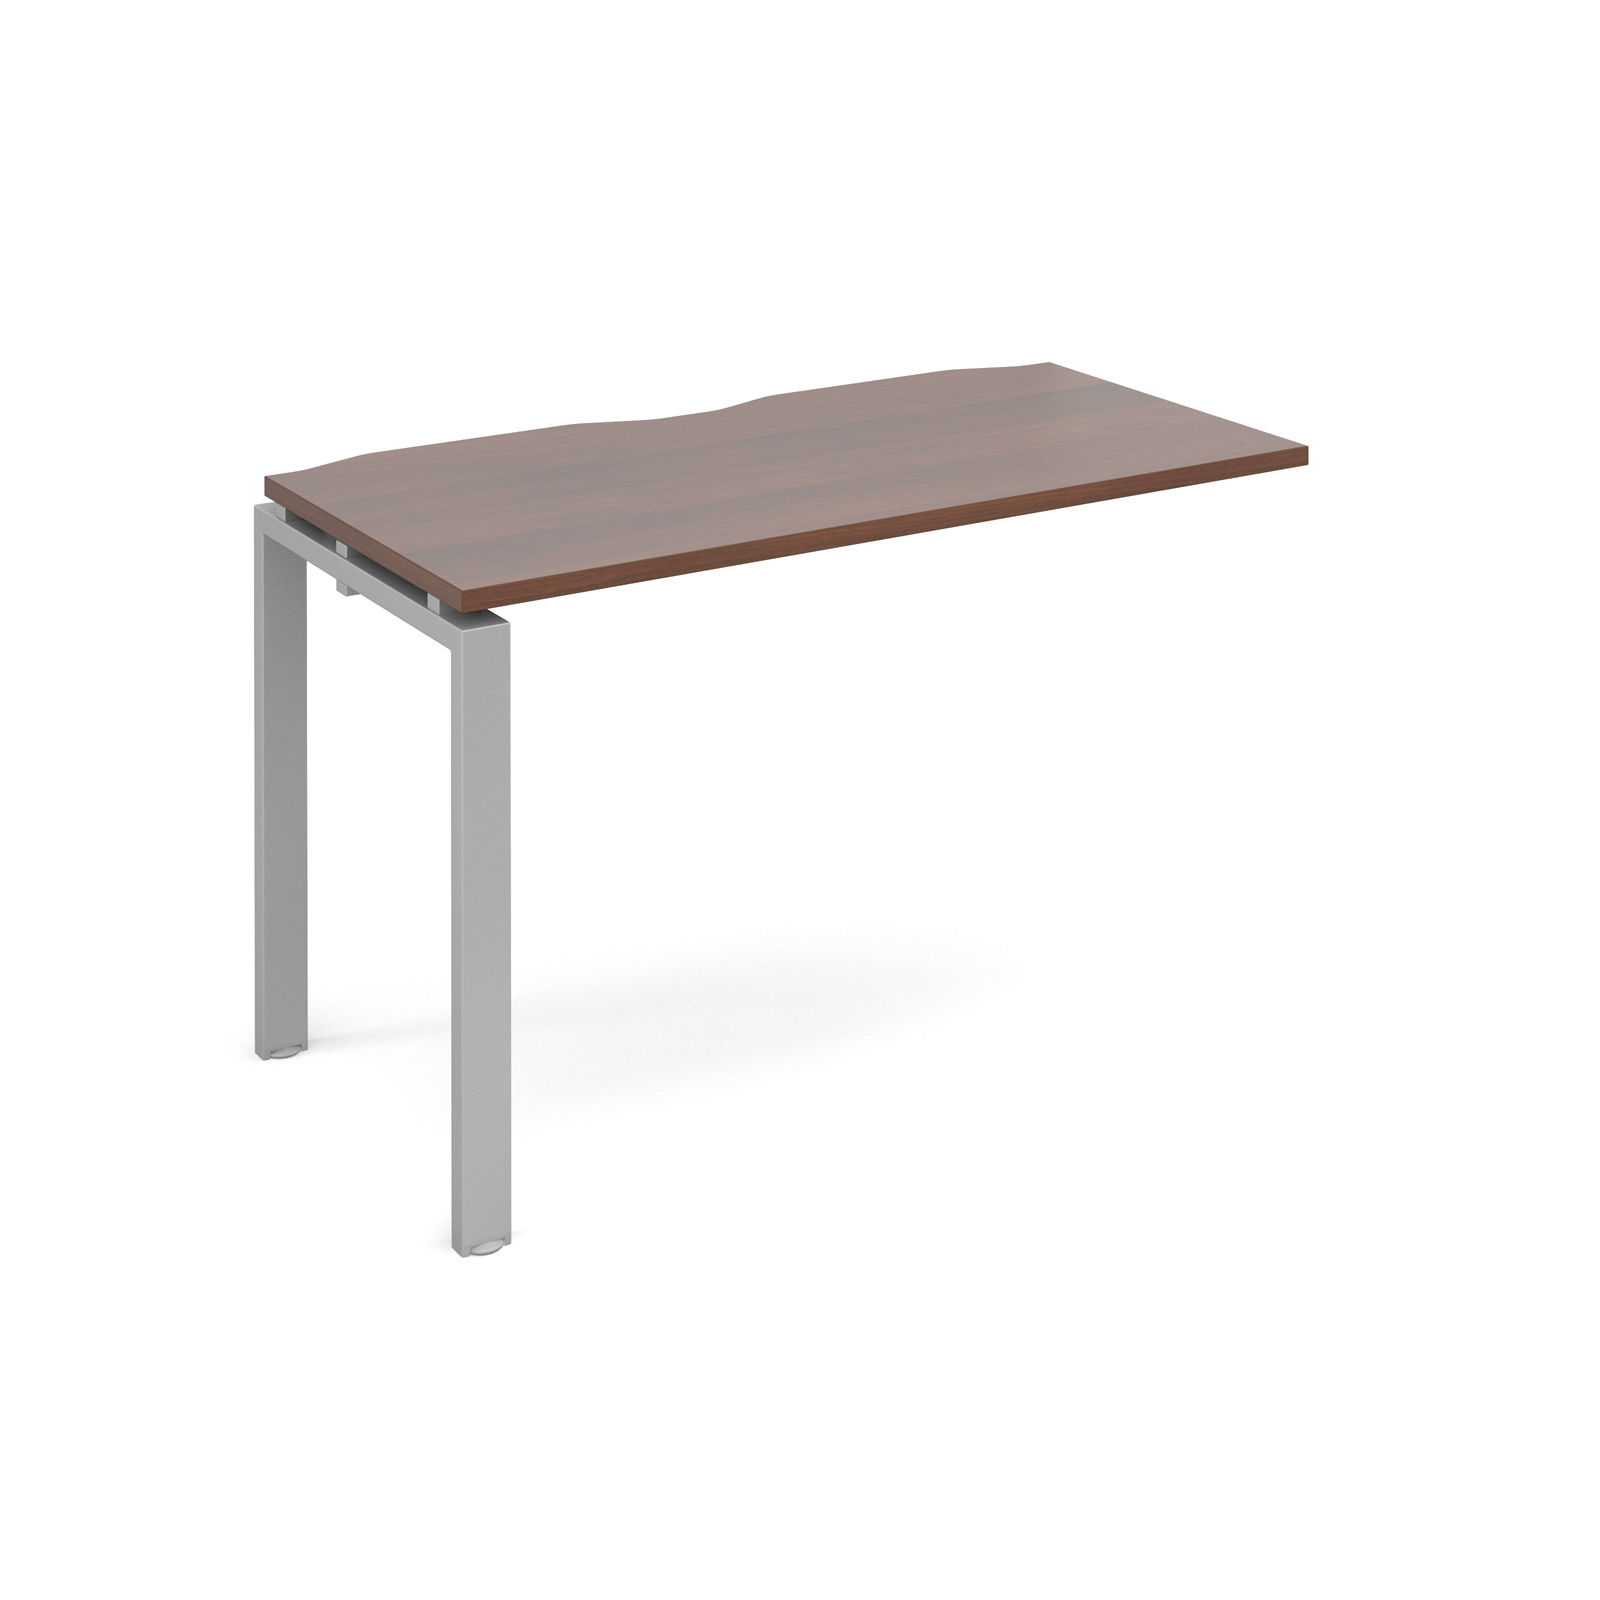 Adapt II 1200 x 600 x 725mm Single Add On Bay - Walnut / Silver Leg